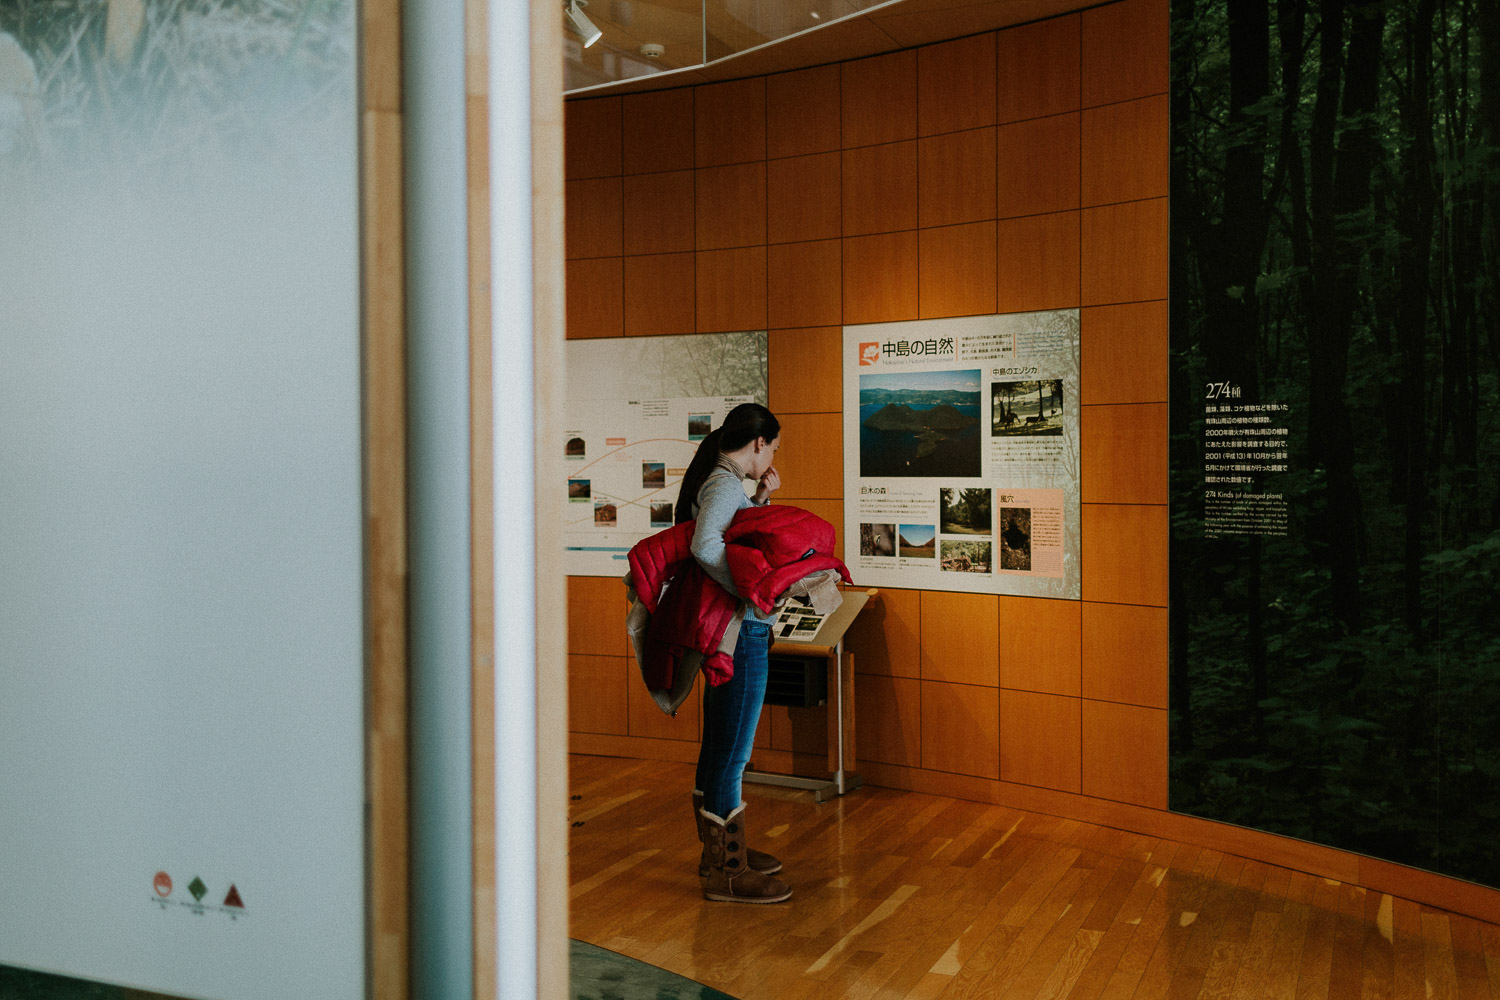 Image of a girl reading inside museum